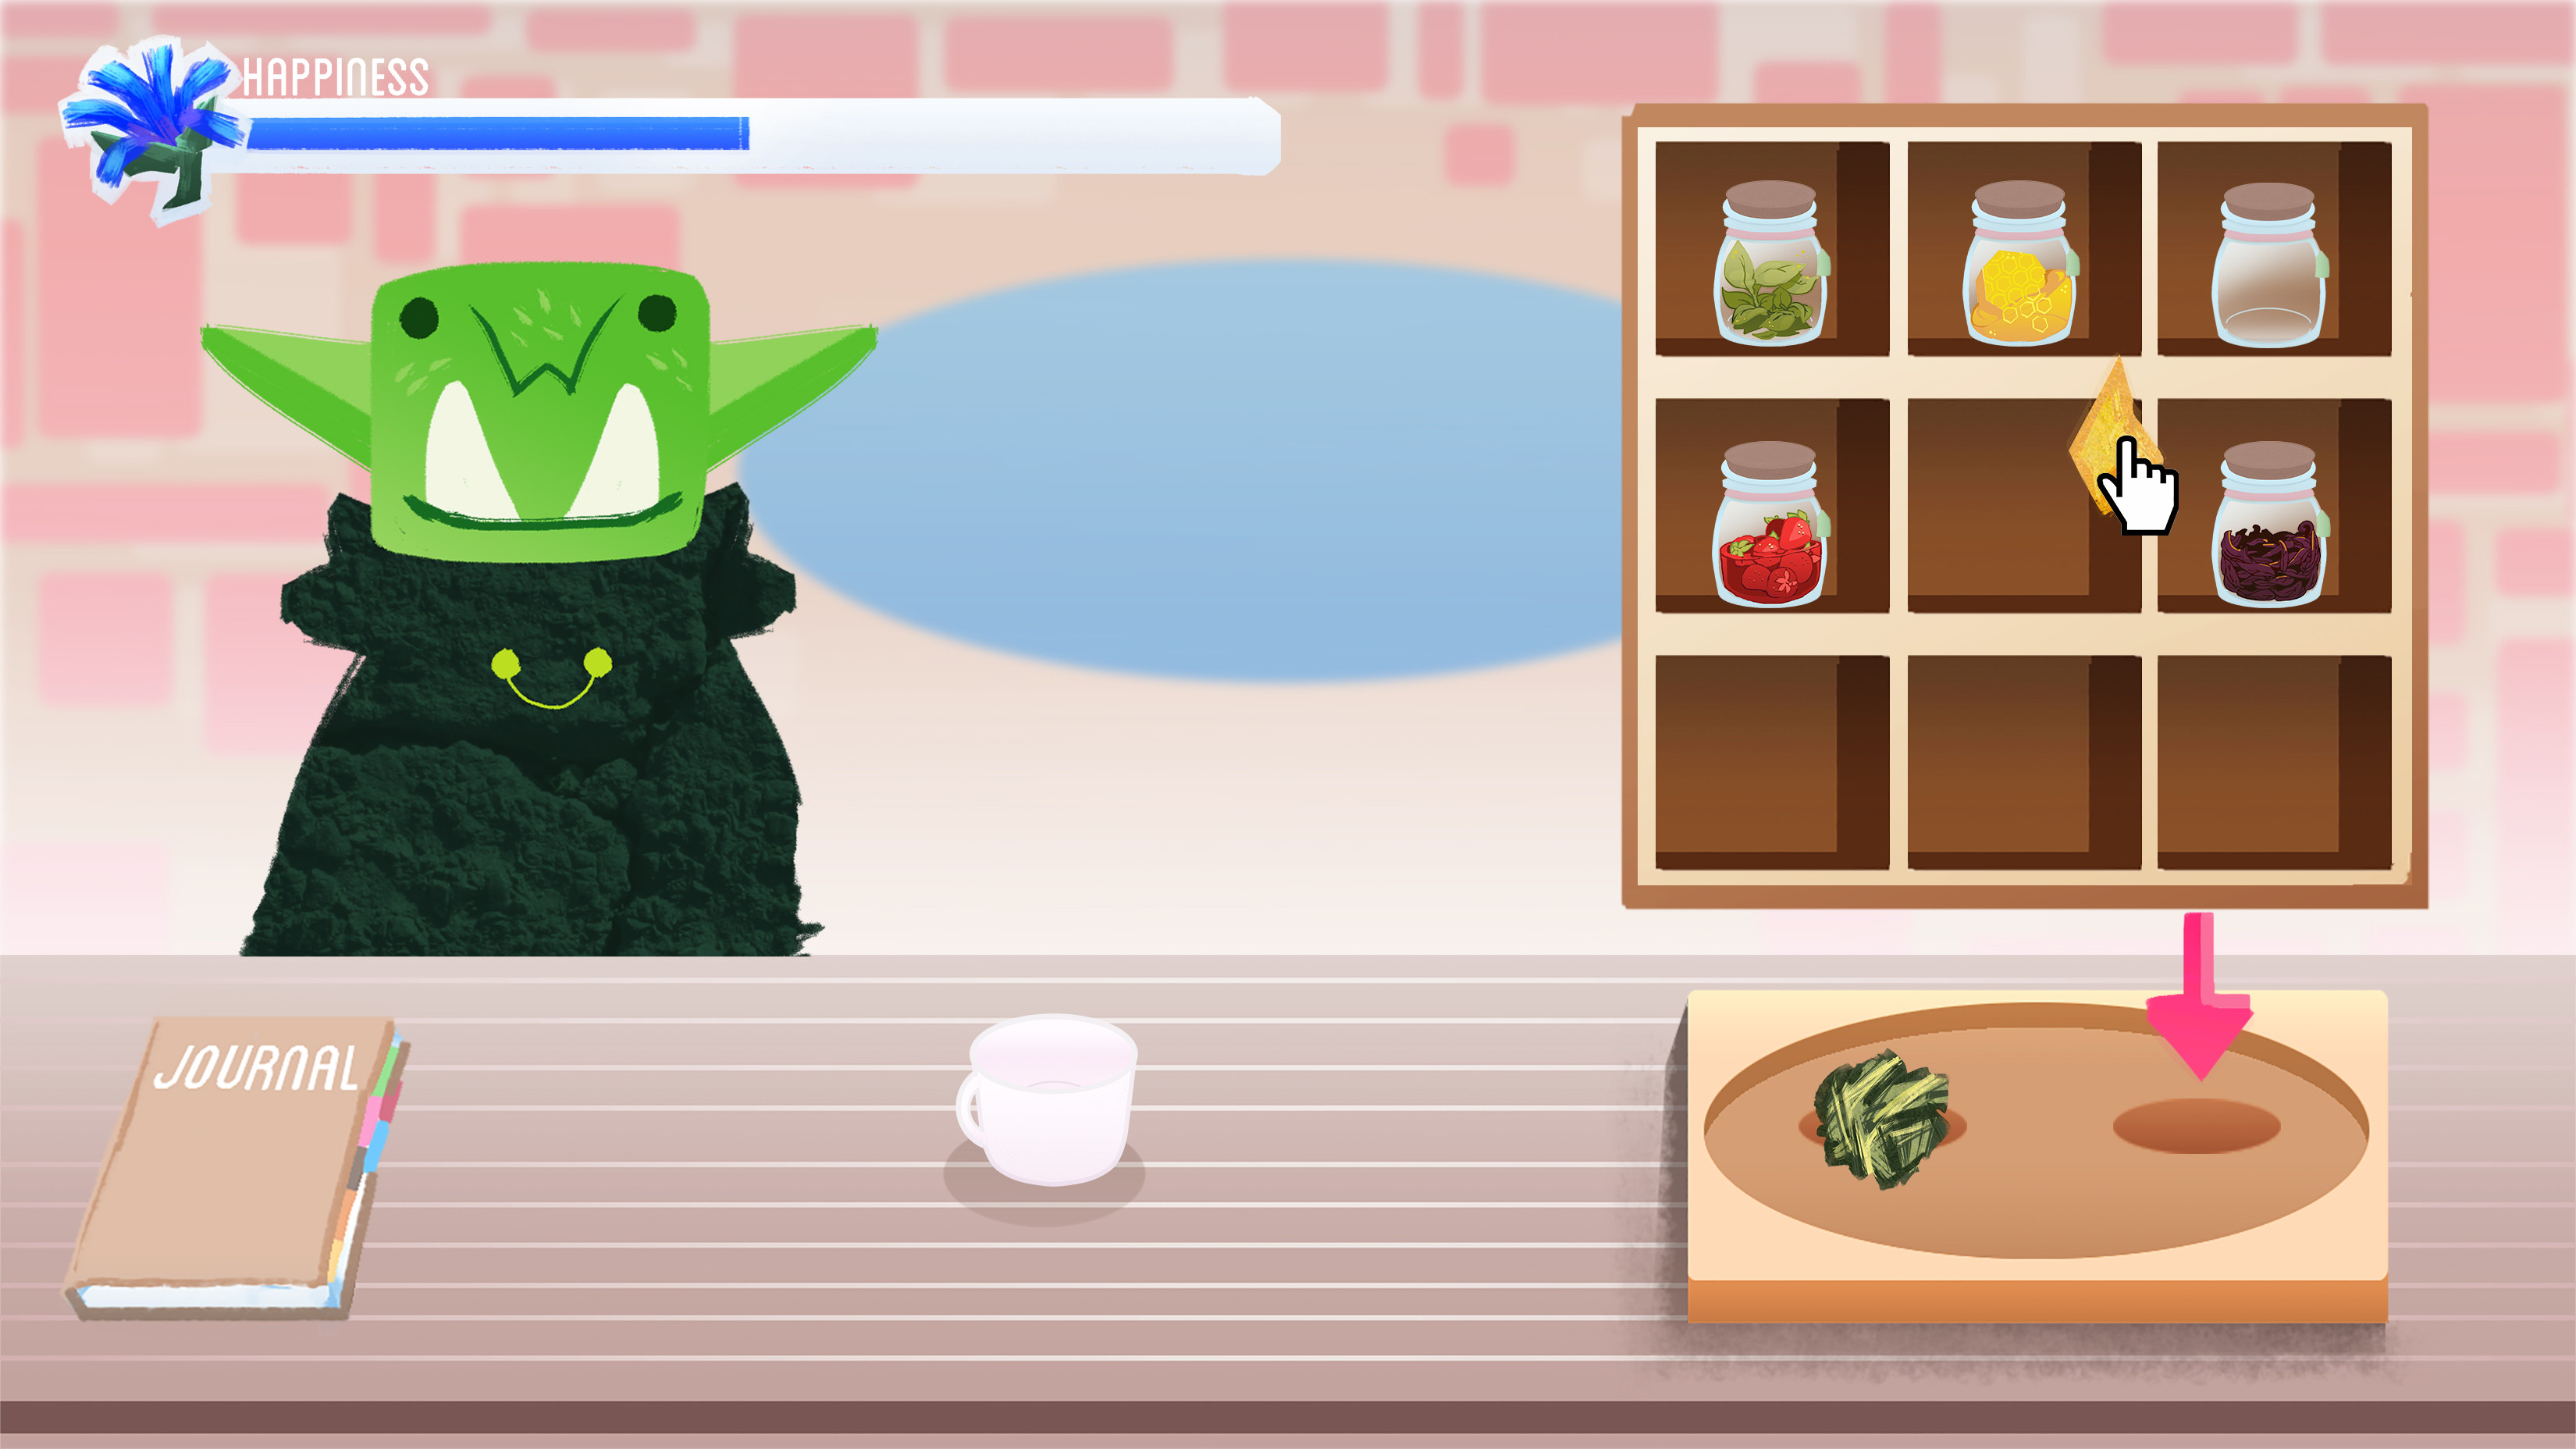 Player has to drag ingredients onto 2 spots on the mixing board before a 'mix!' button will appear.